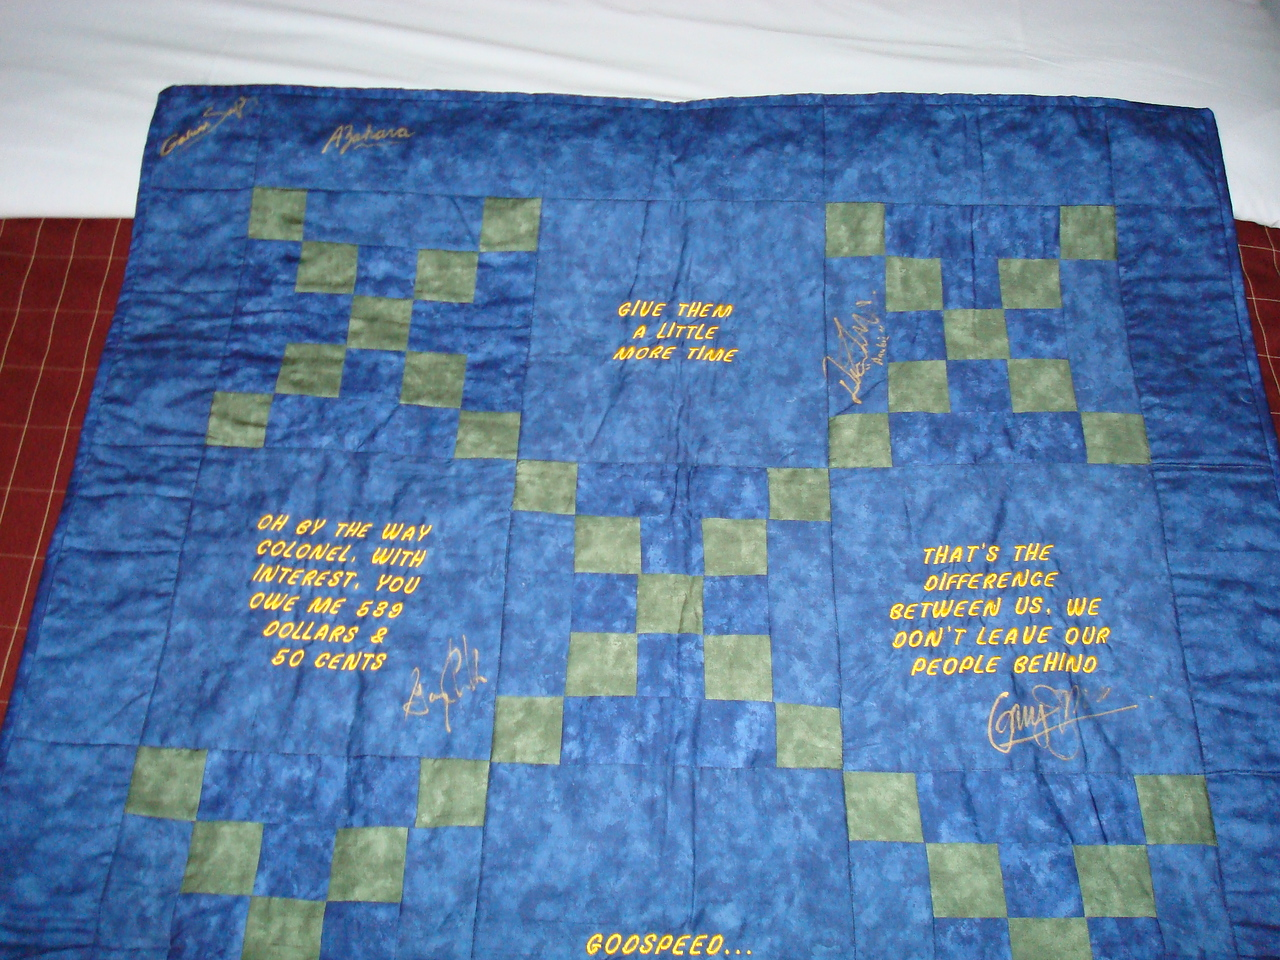 The quilt I got at the auction. It has things General Hammond said on it as a tribute to Don S. Davis, who died on 29 June 2008.